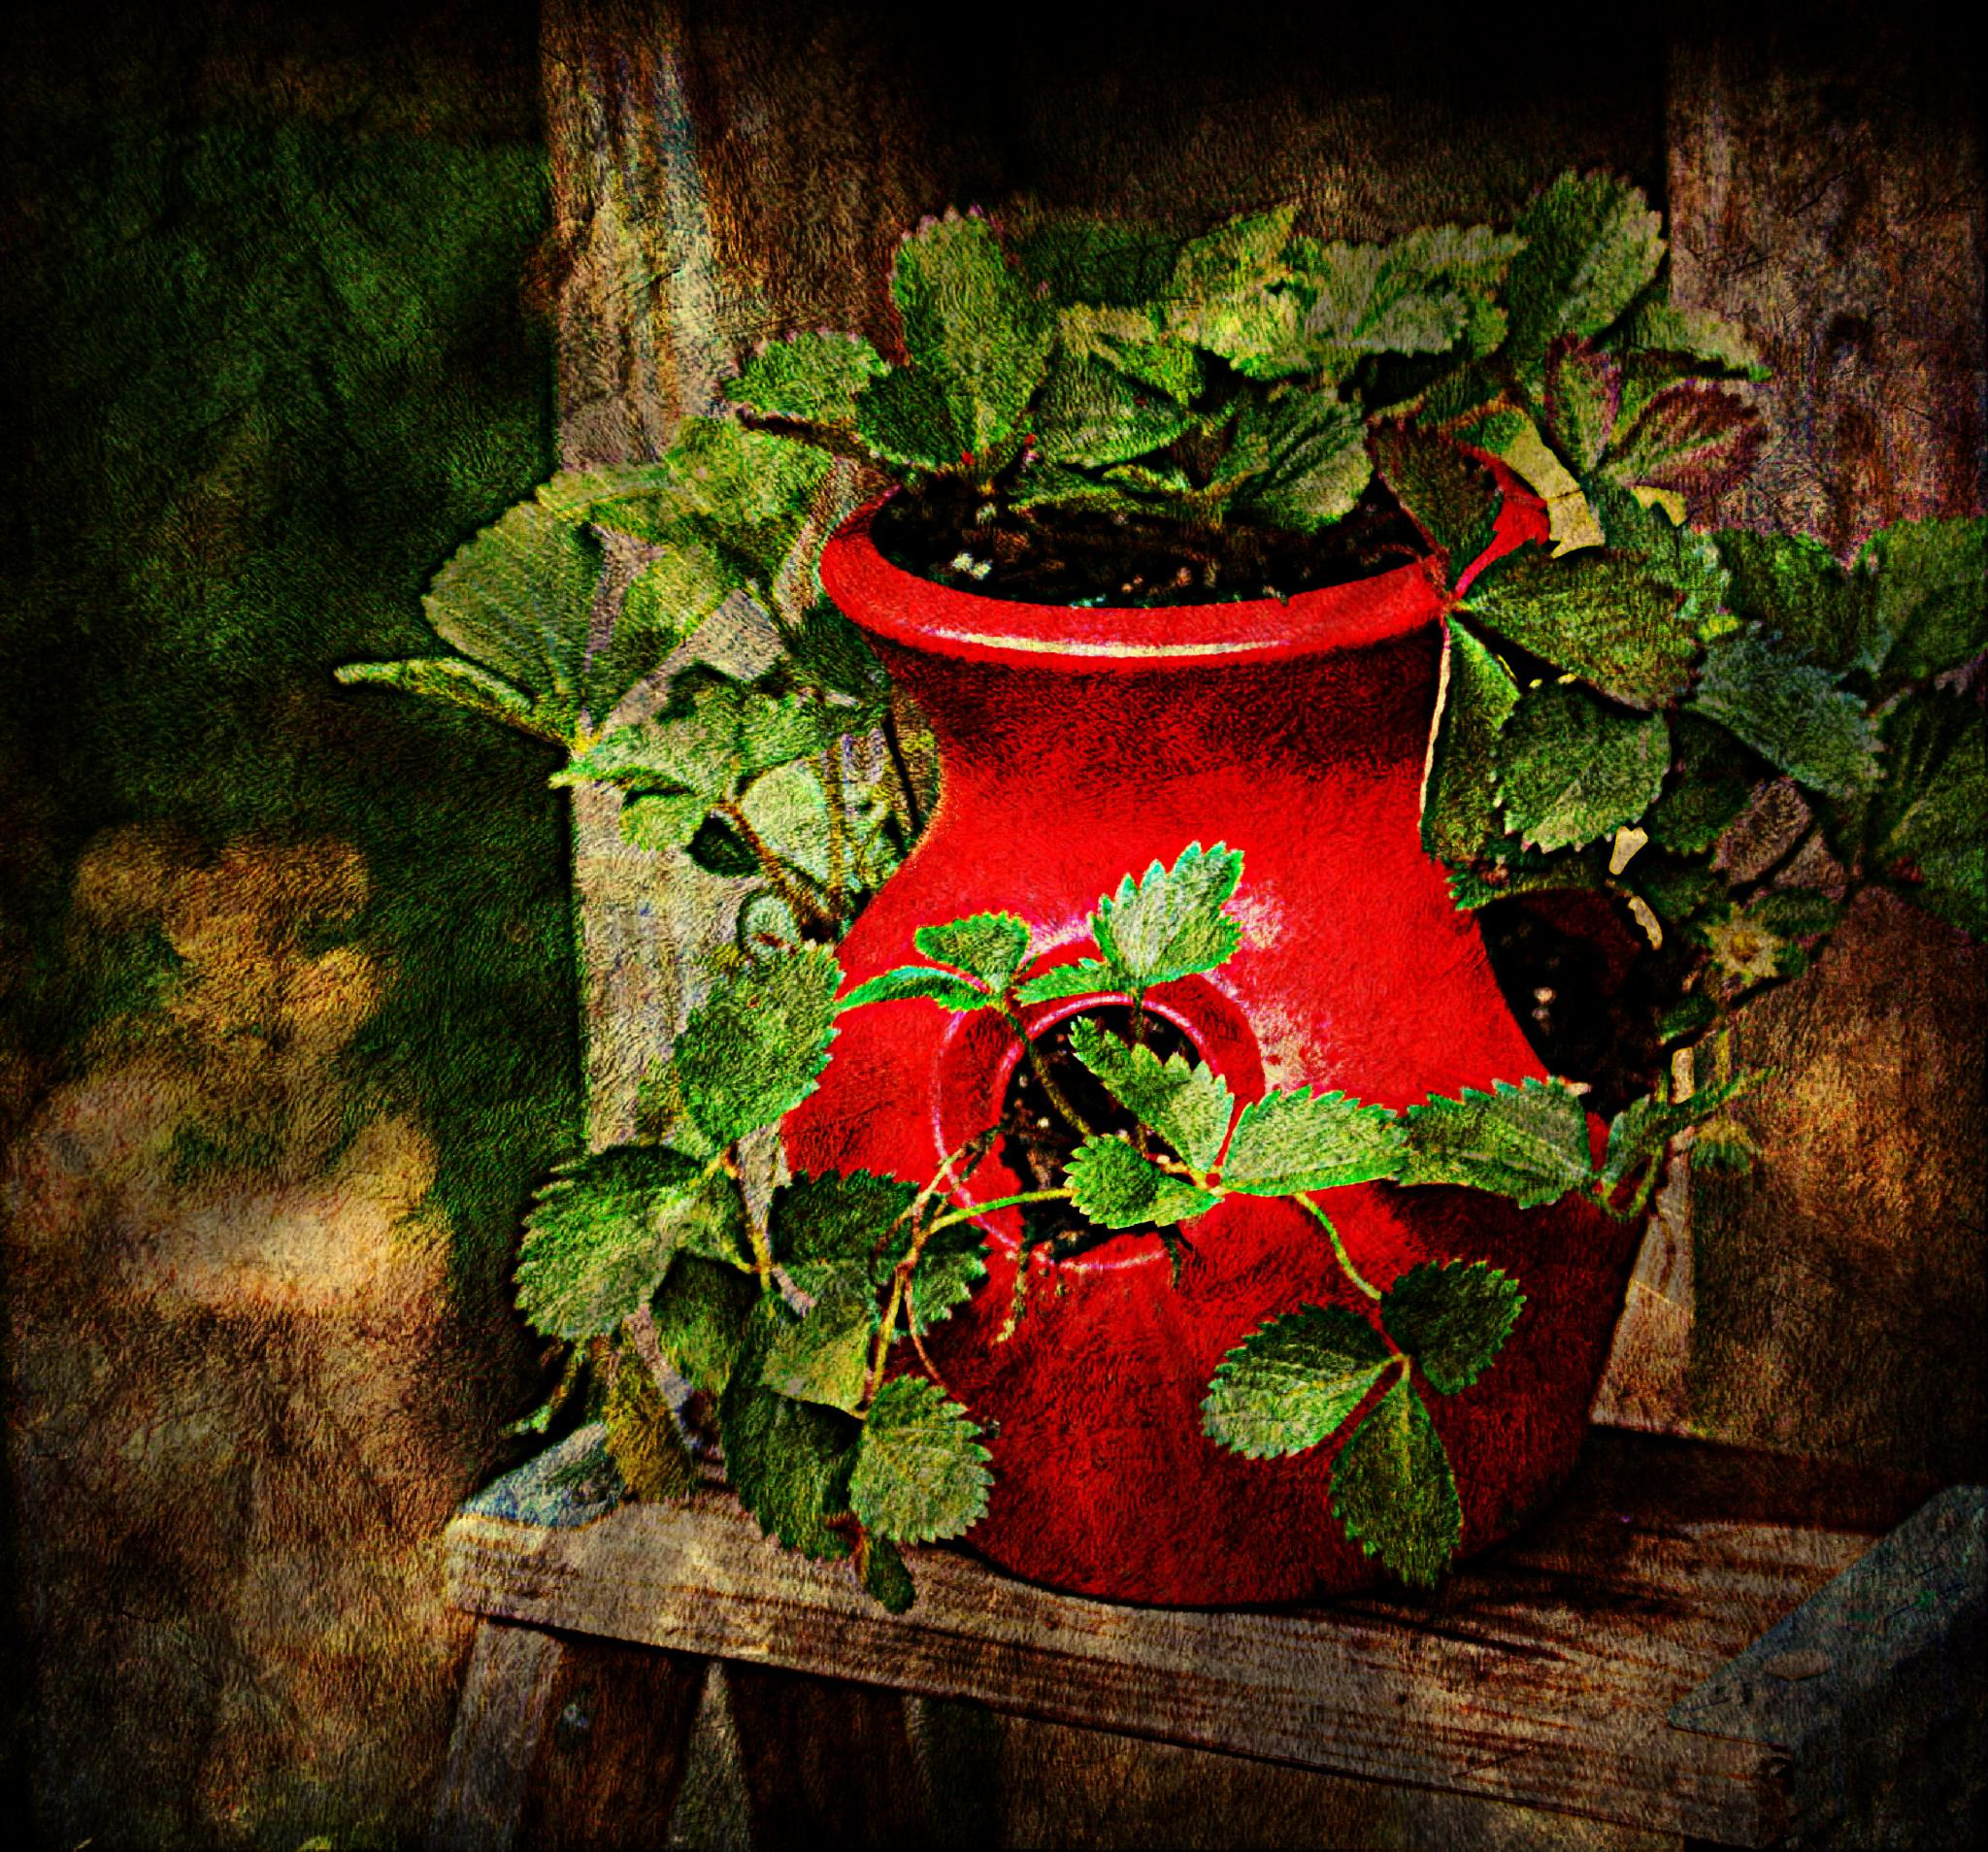 Strawberry Pot by ginger.barritt